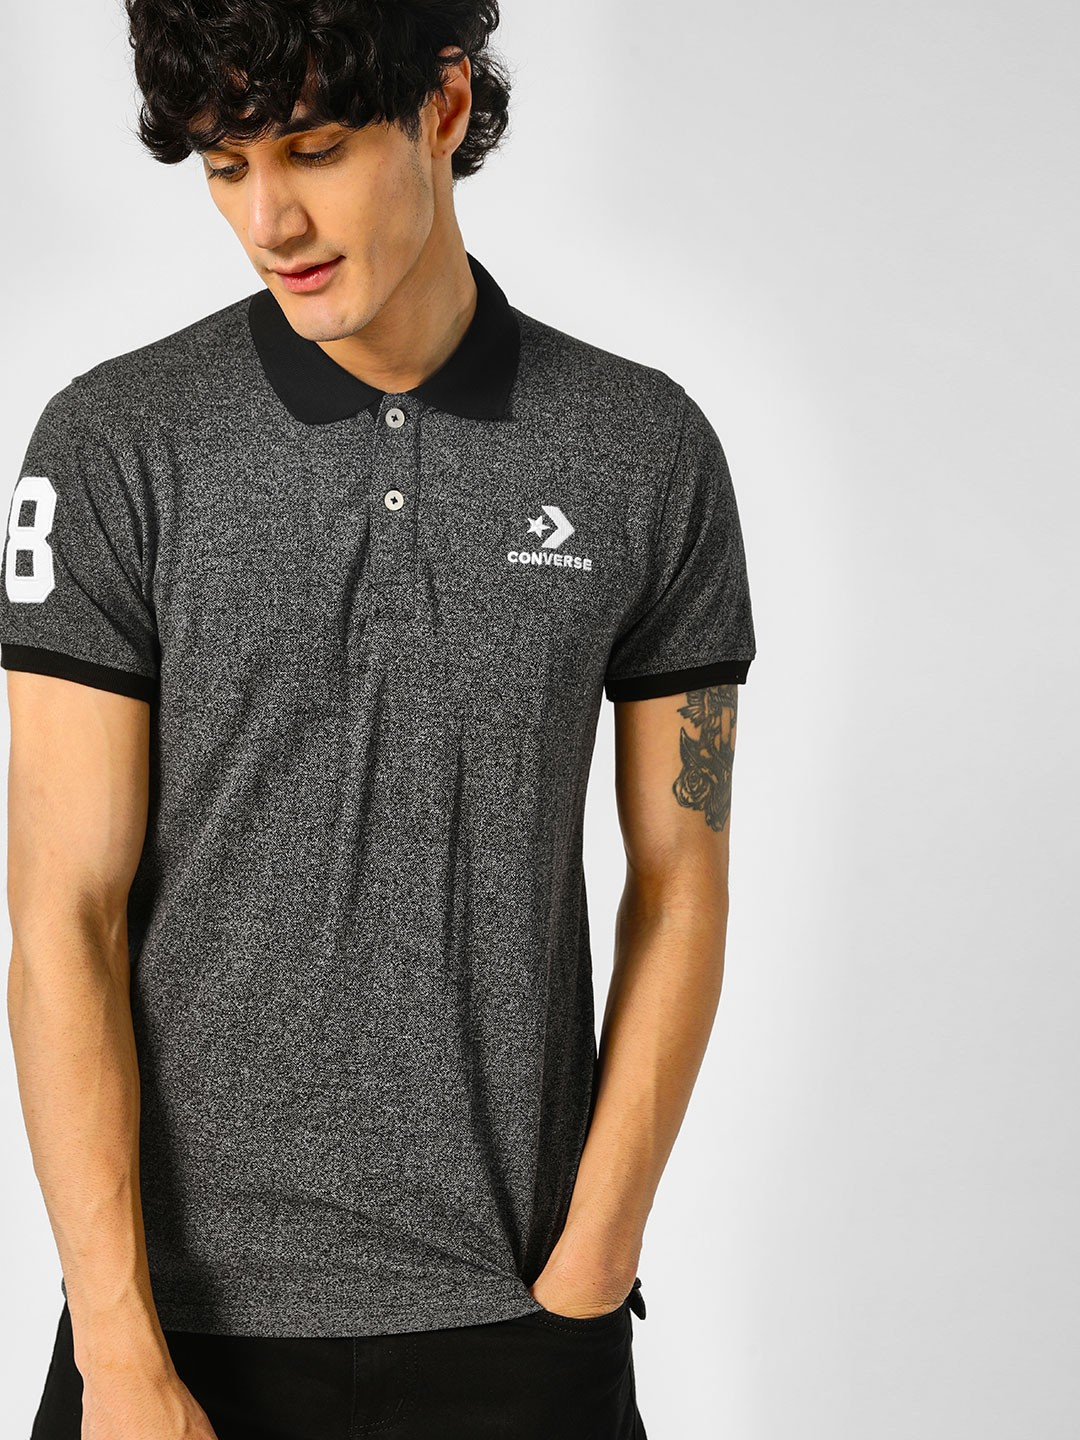 Converse Grey Placement Print Polo Shirt 1